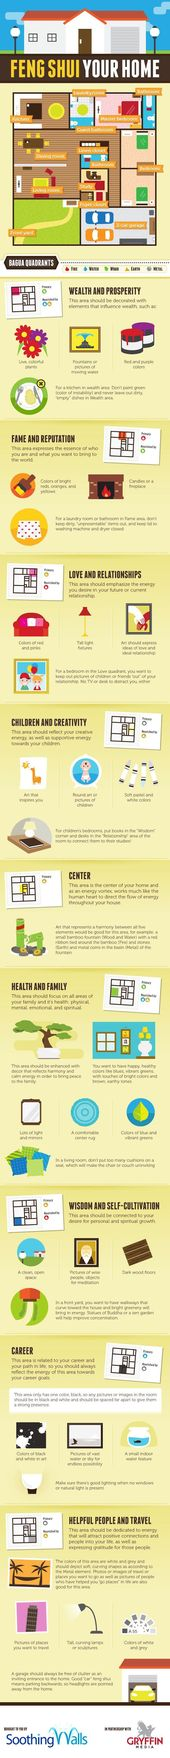 11 Best Feng Shui Images On Pinterest Home Ideas Bedroom And